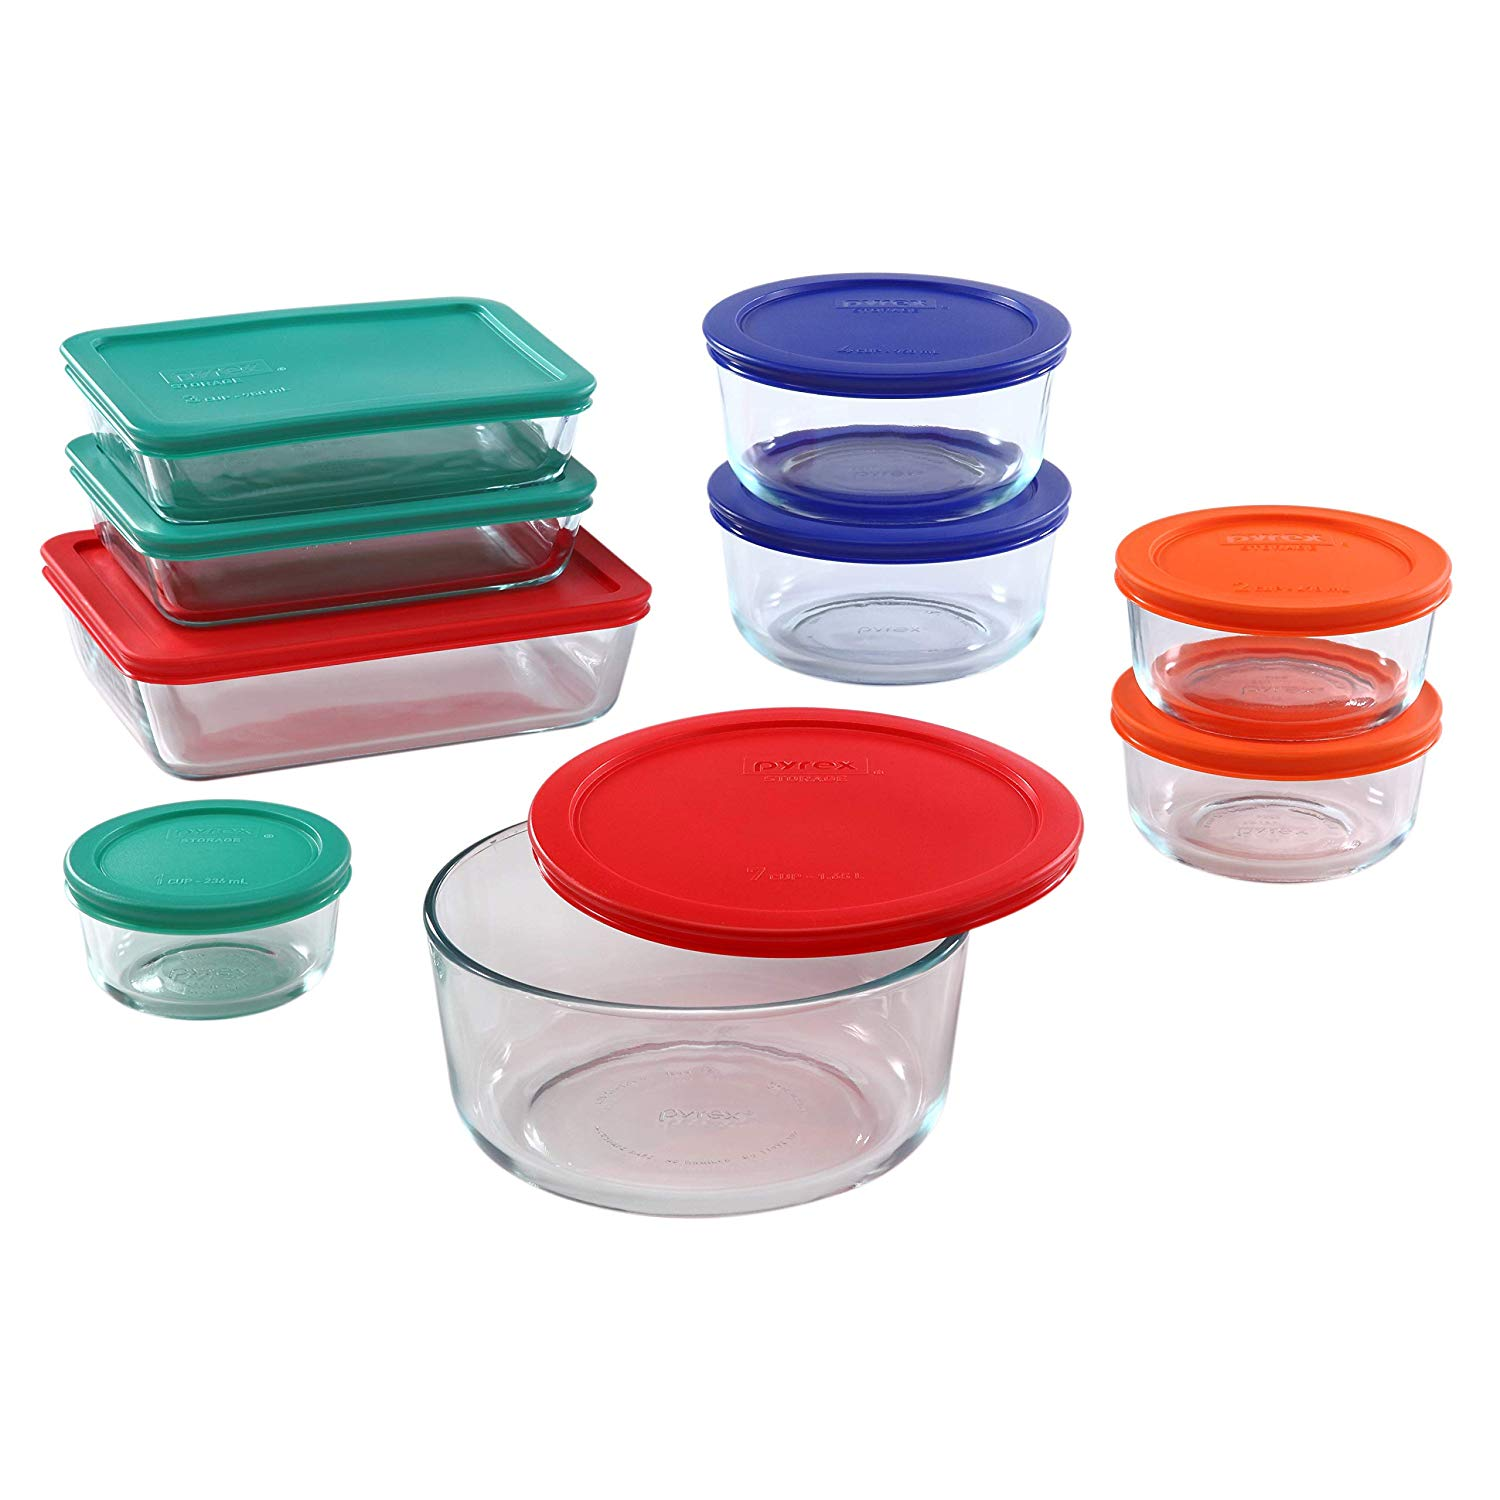 Pyrex Meal Prep Simply Store Glass Rectangular and Round Food Container Set